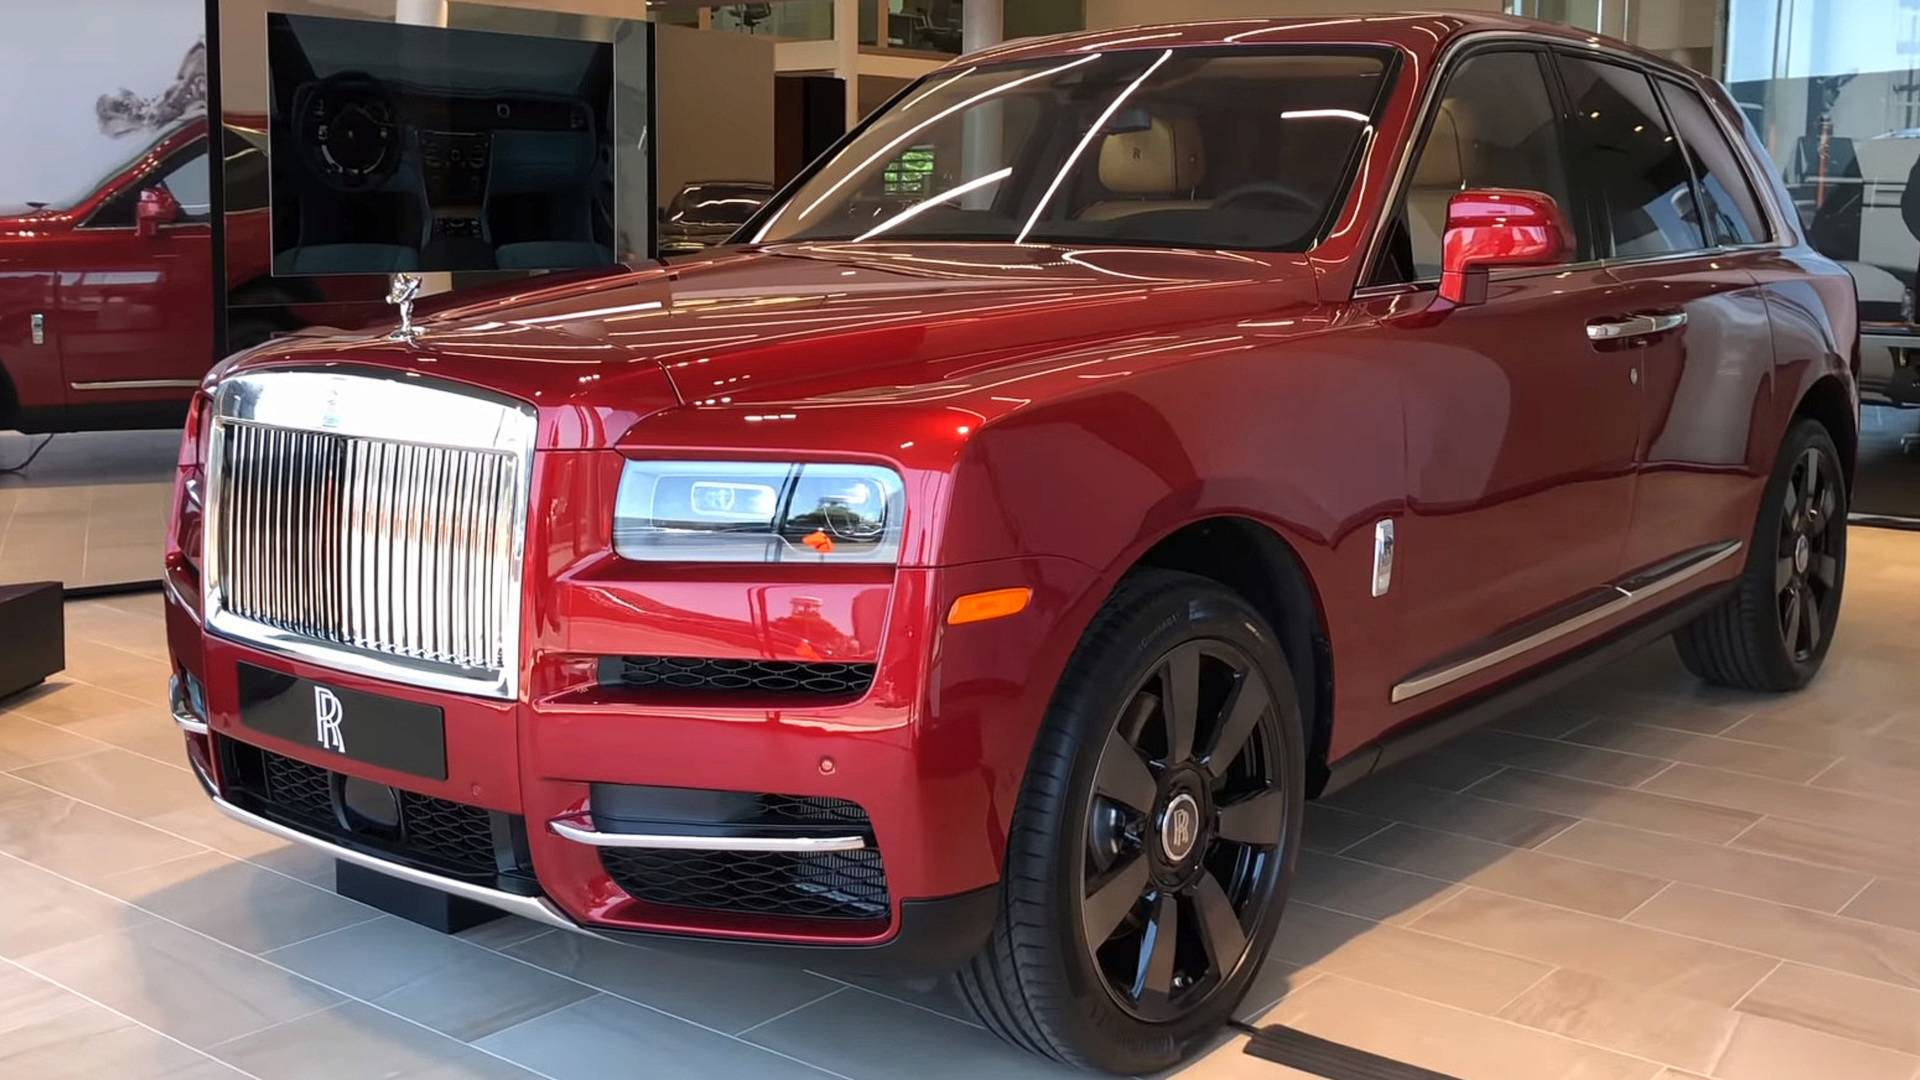 Rolls Royce Cullinan Launch Edition Detailed On Video